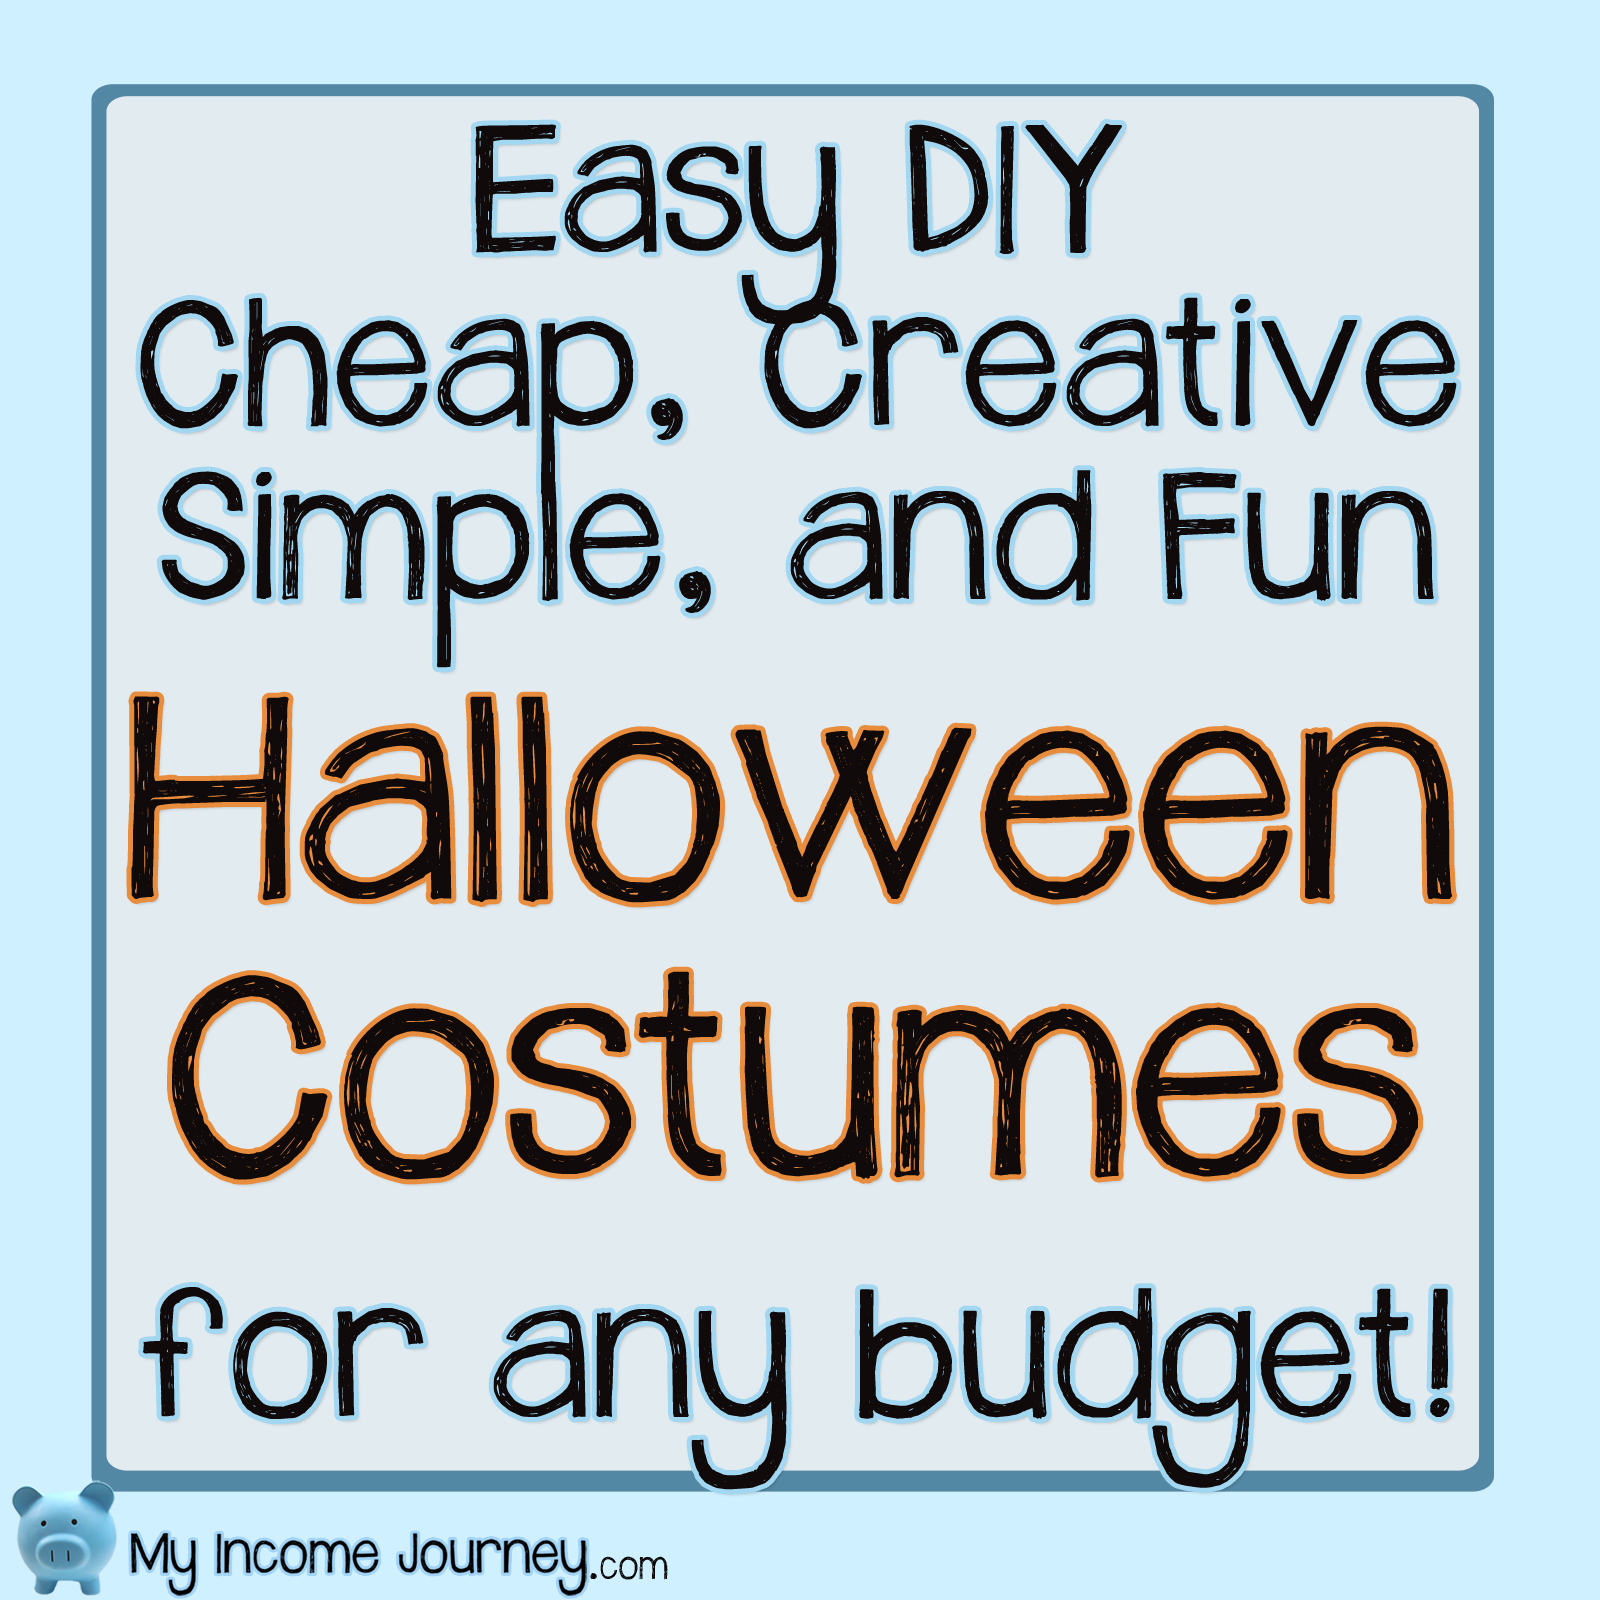 Favorite Cheap Halloween Costumes!